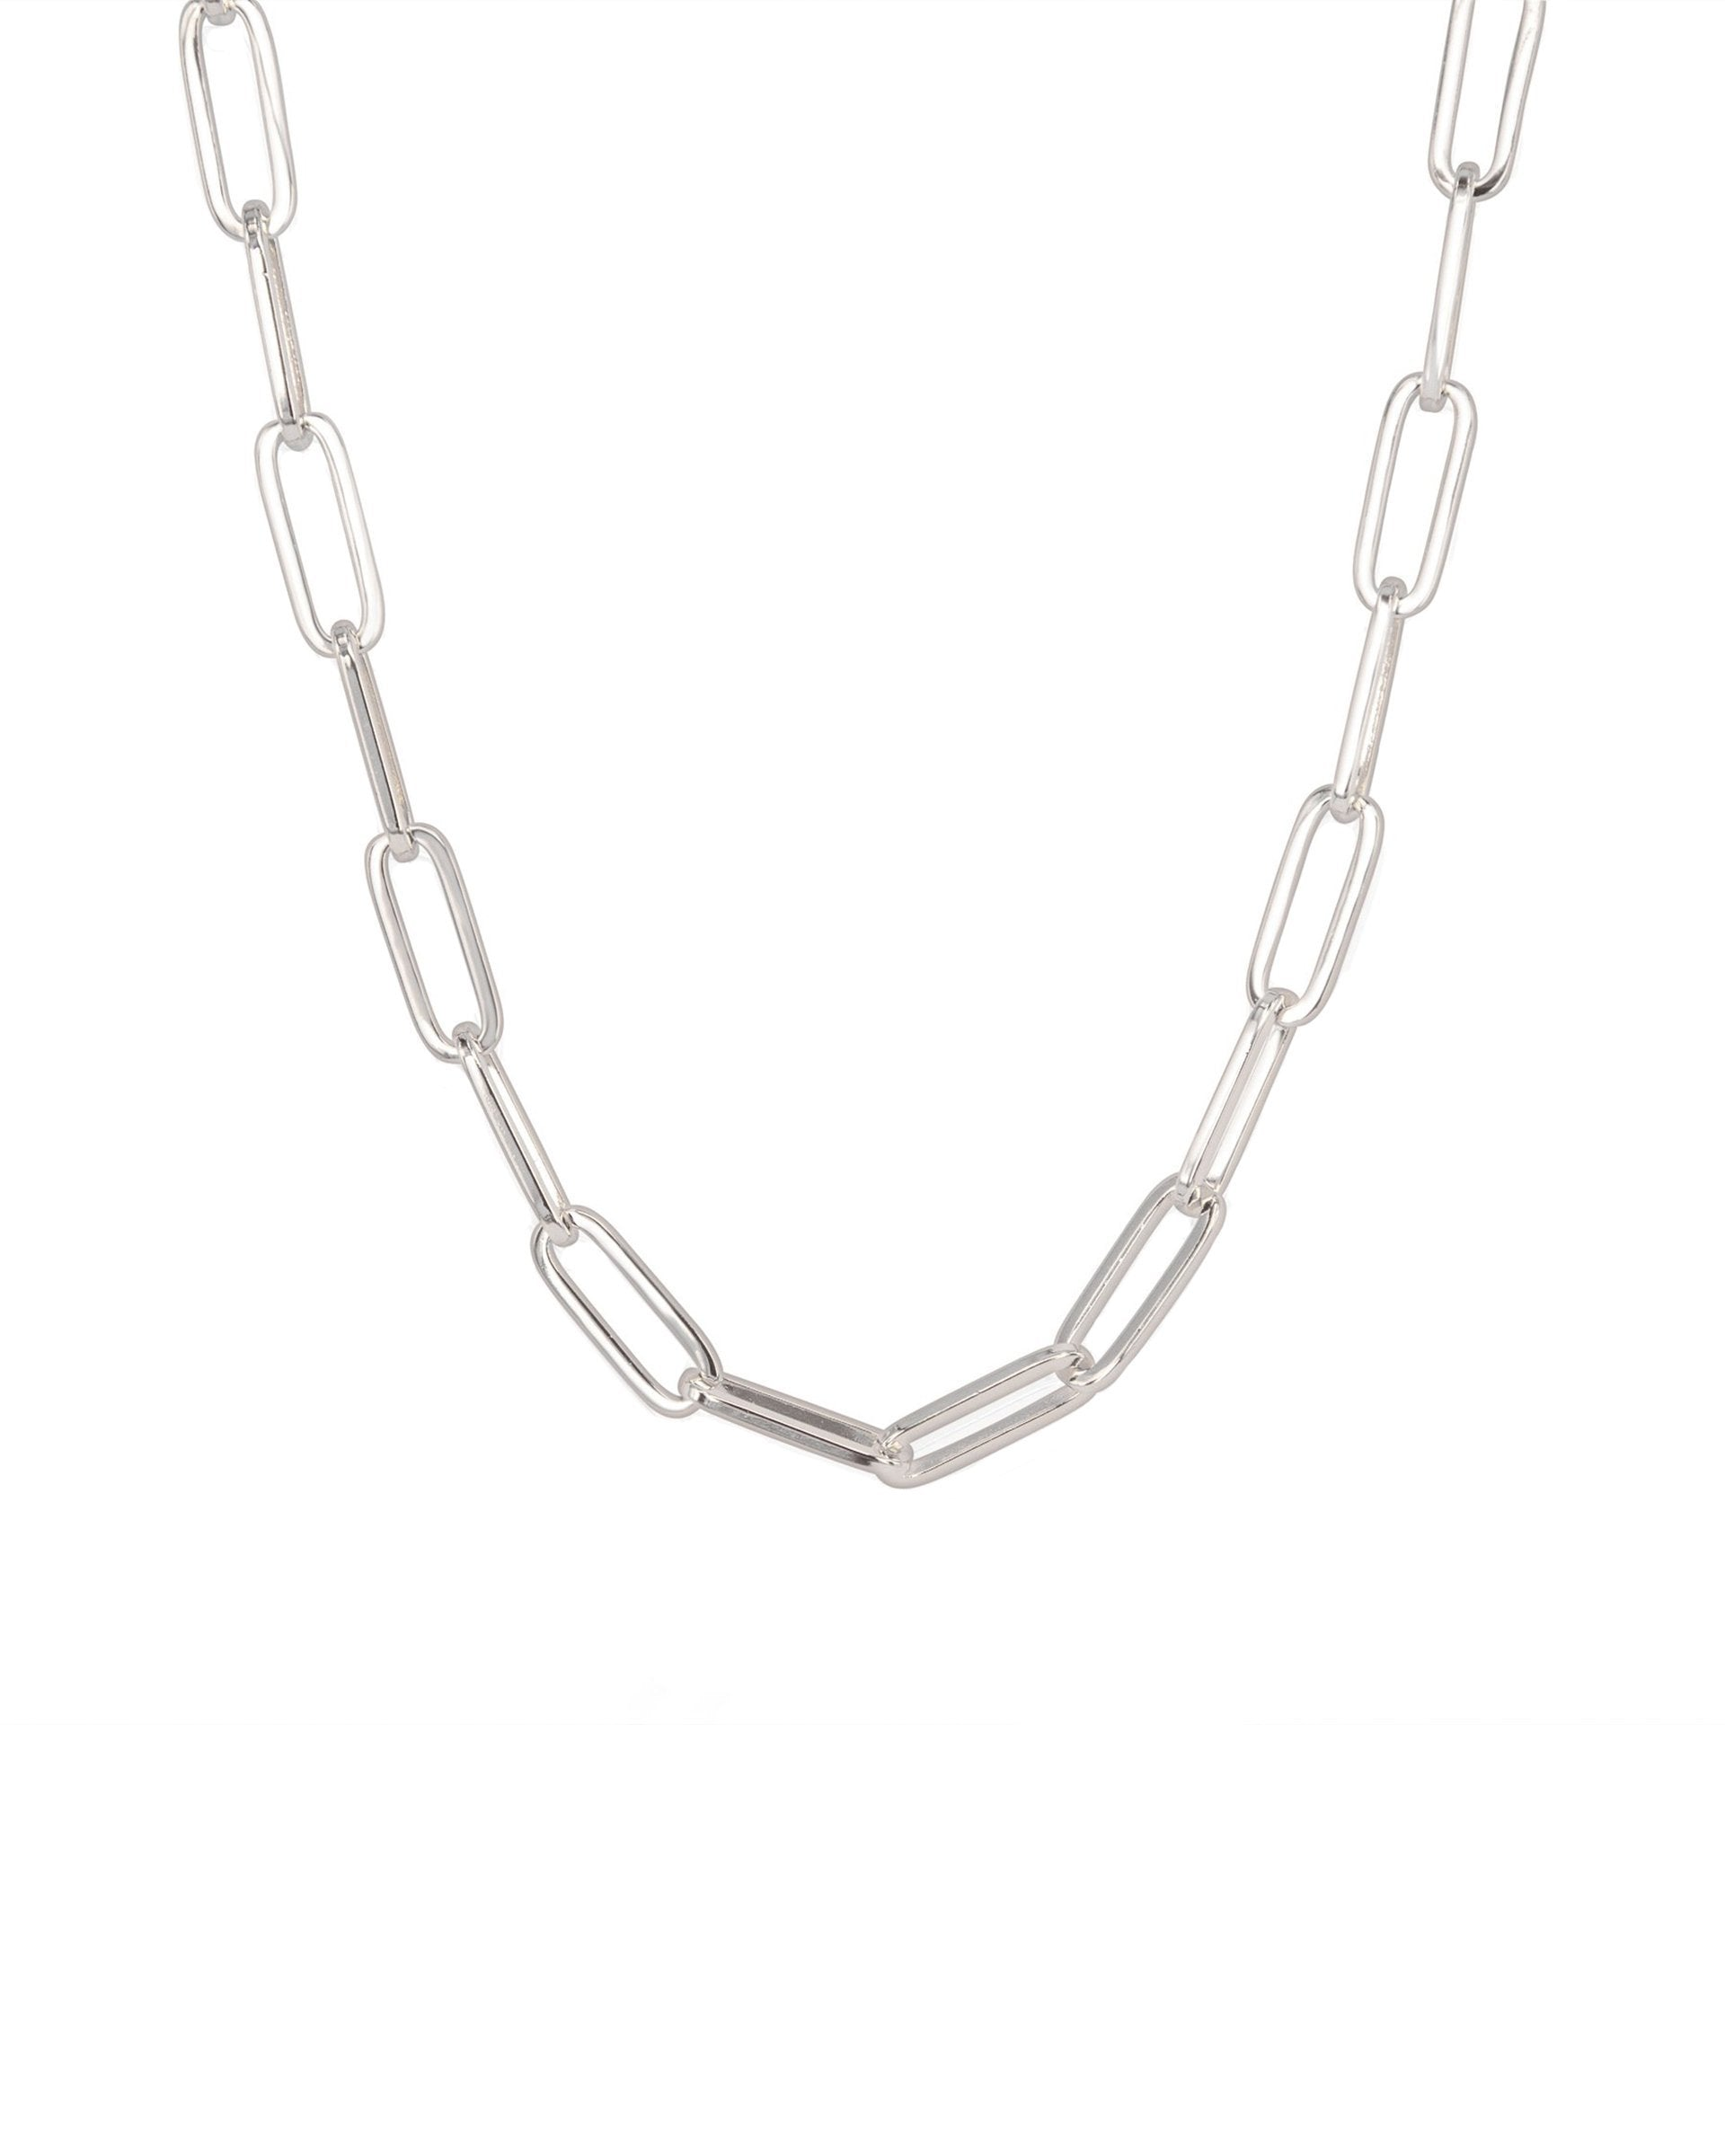 HEAVYWEIGHT PAPERCLIP CHAIN STERLING SILVER